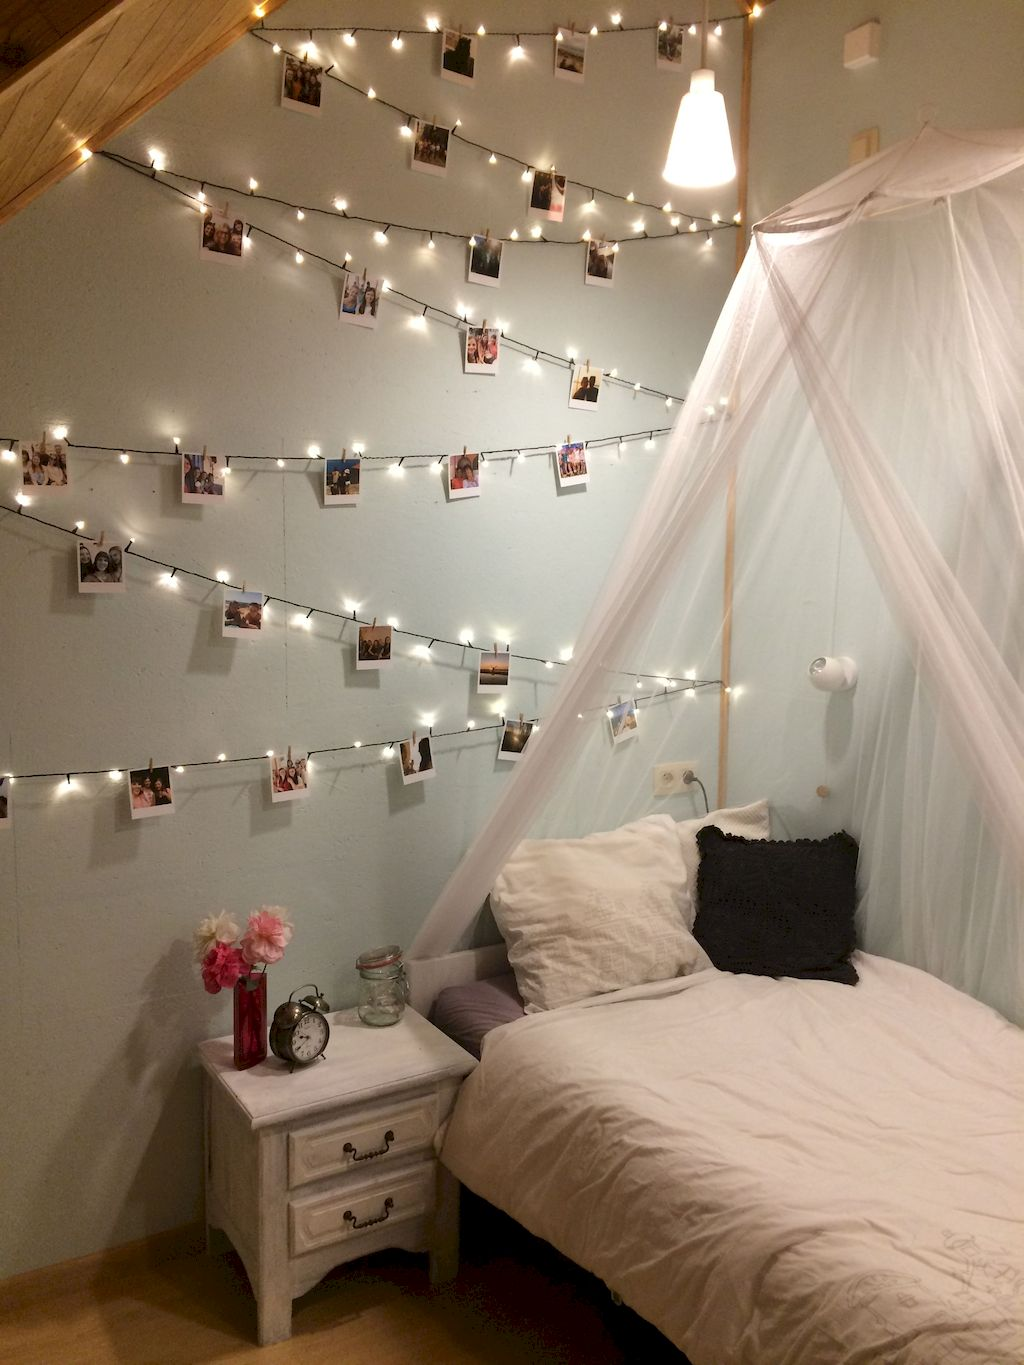 What You Must Consider for Cozy Bedroom Lighting 83